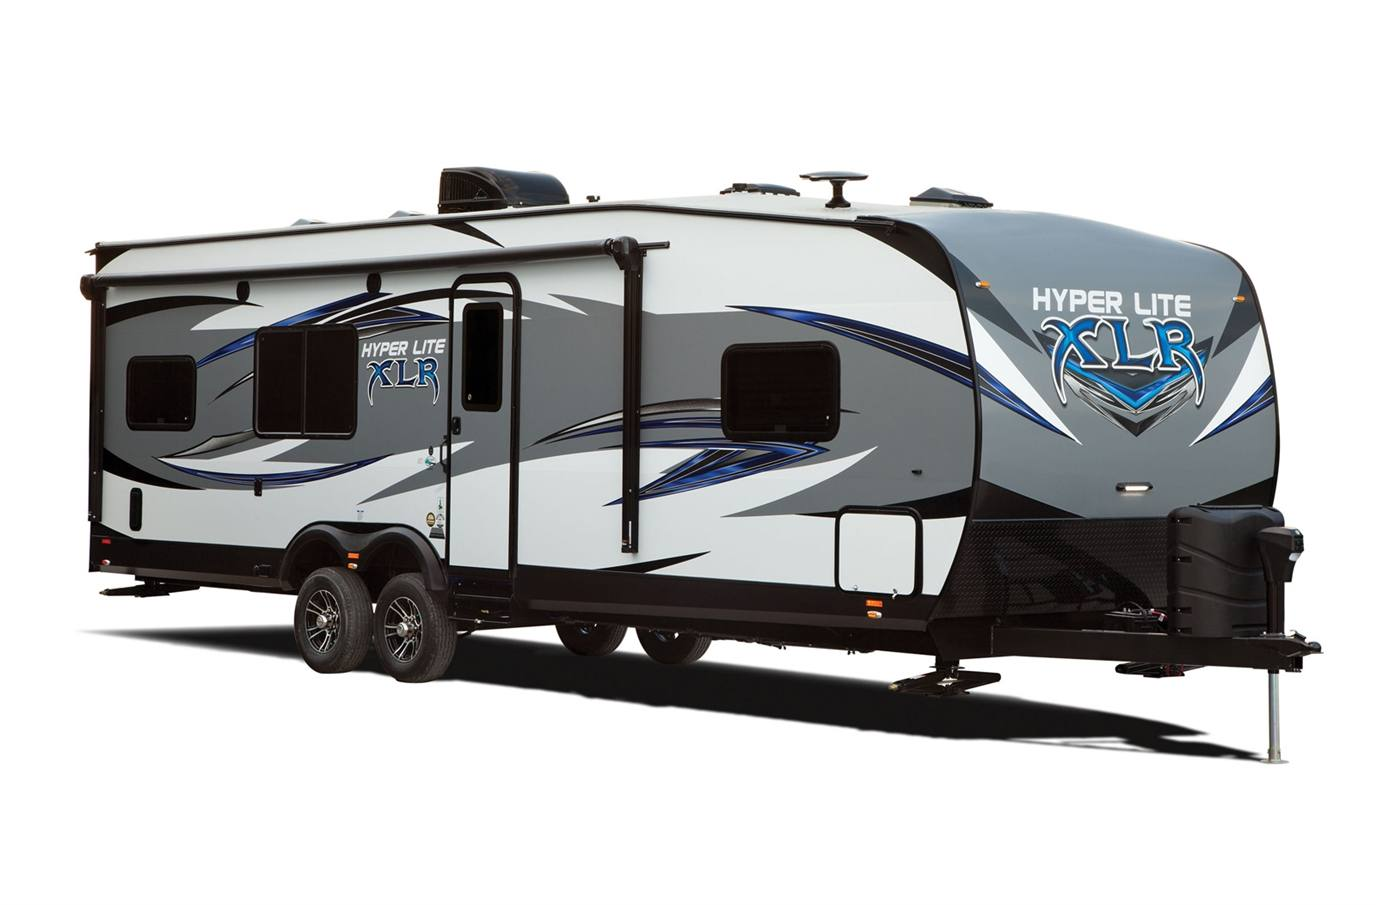 hight resolution of 2018 xlr by forest river 27hfs xlr hyper lite travel trailers